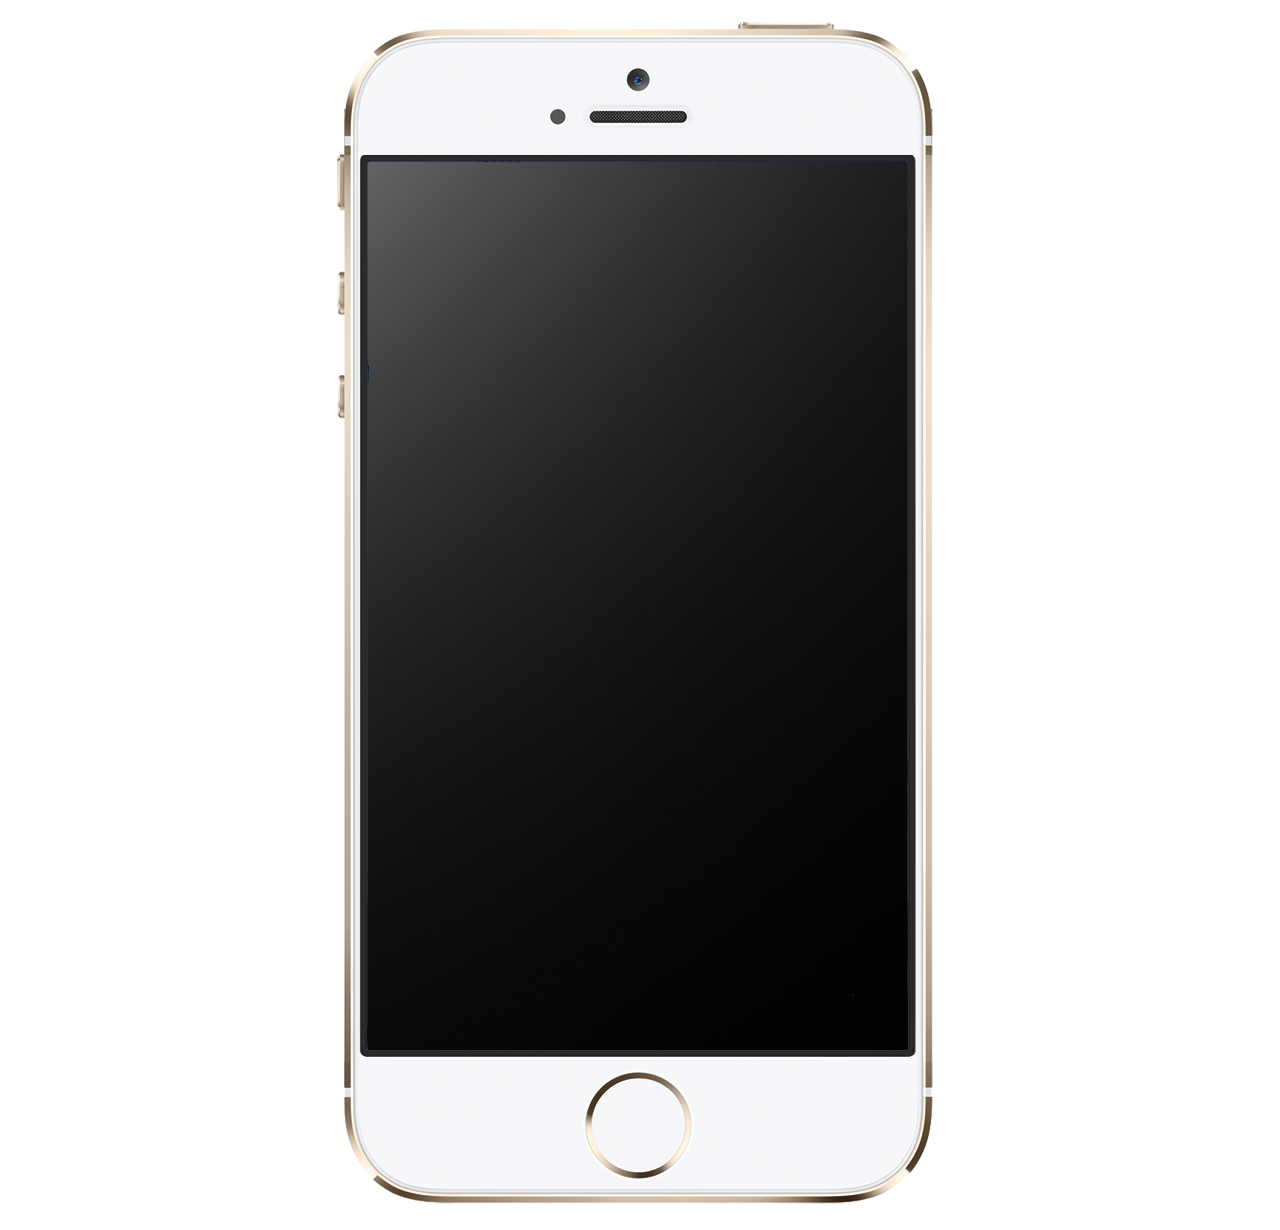 iPhone 6 is rumored to be released in July | iPhoneRoot.com